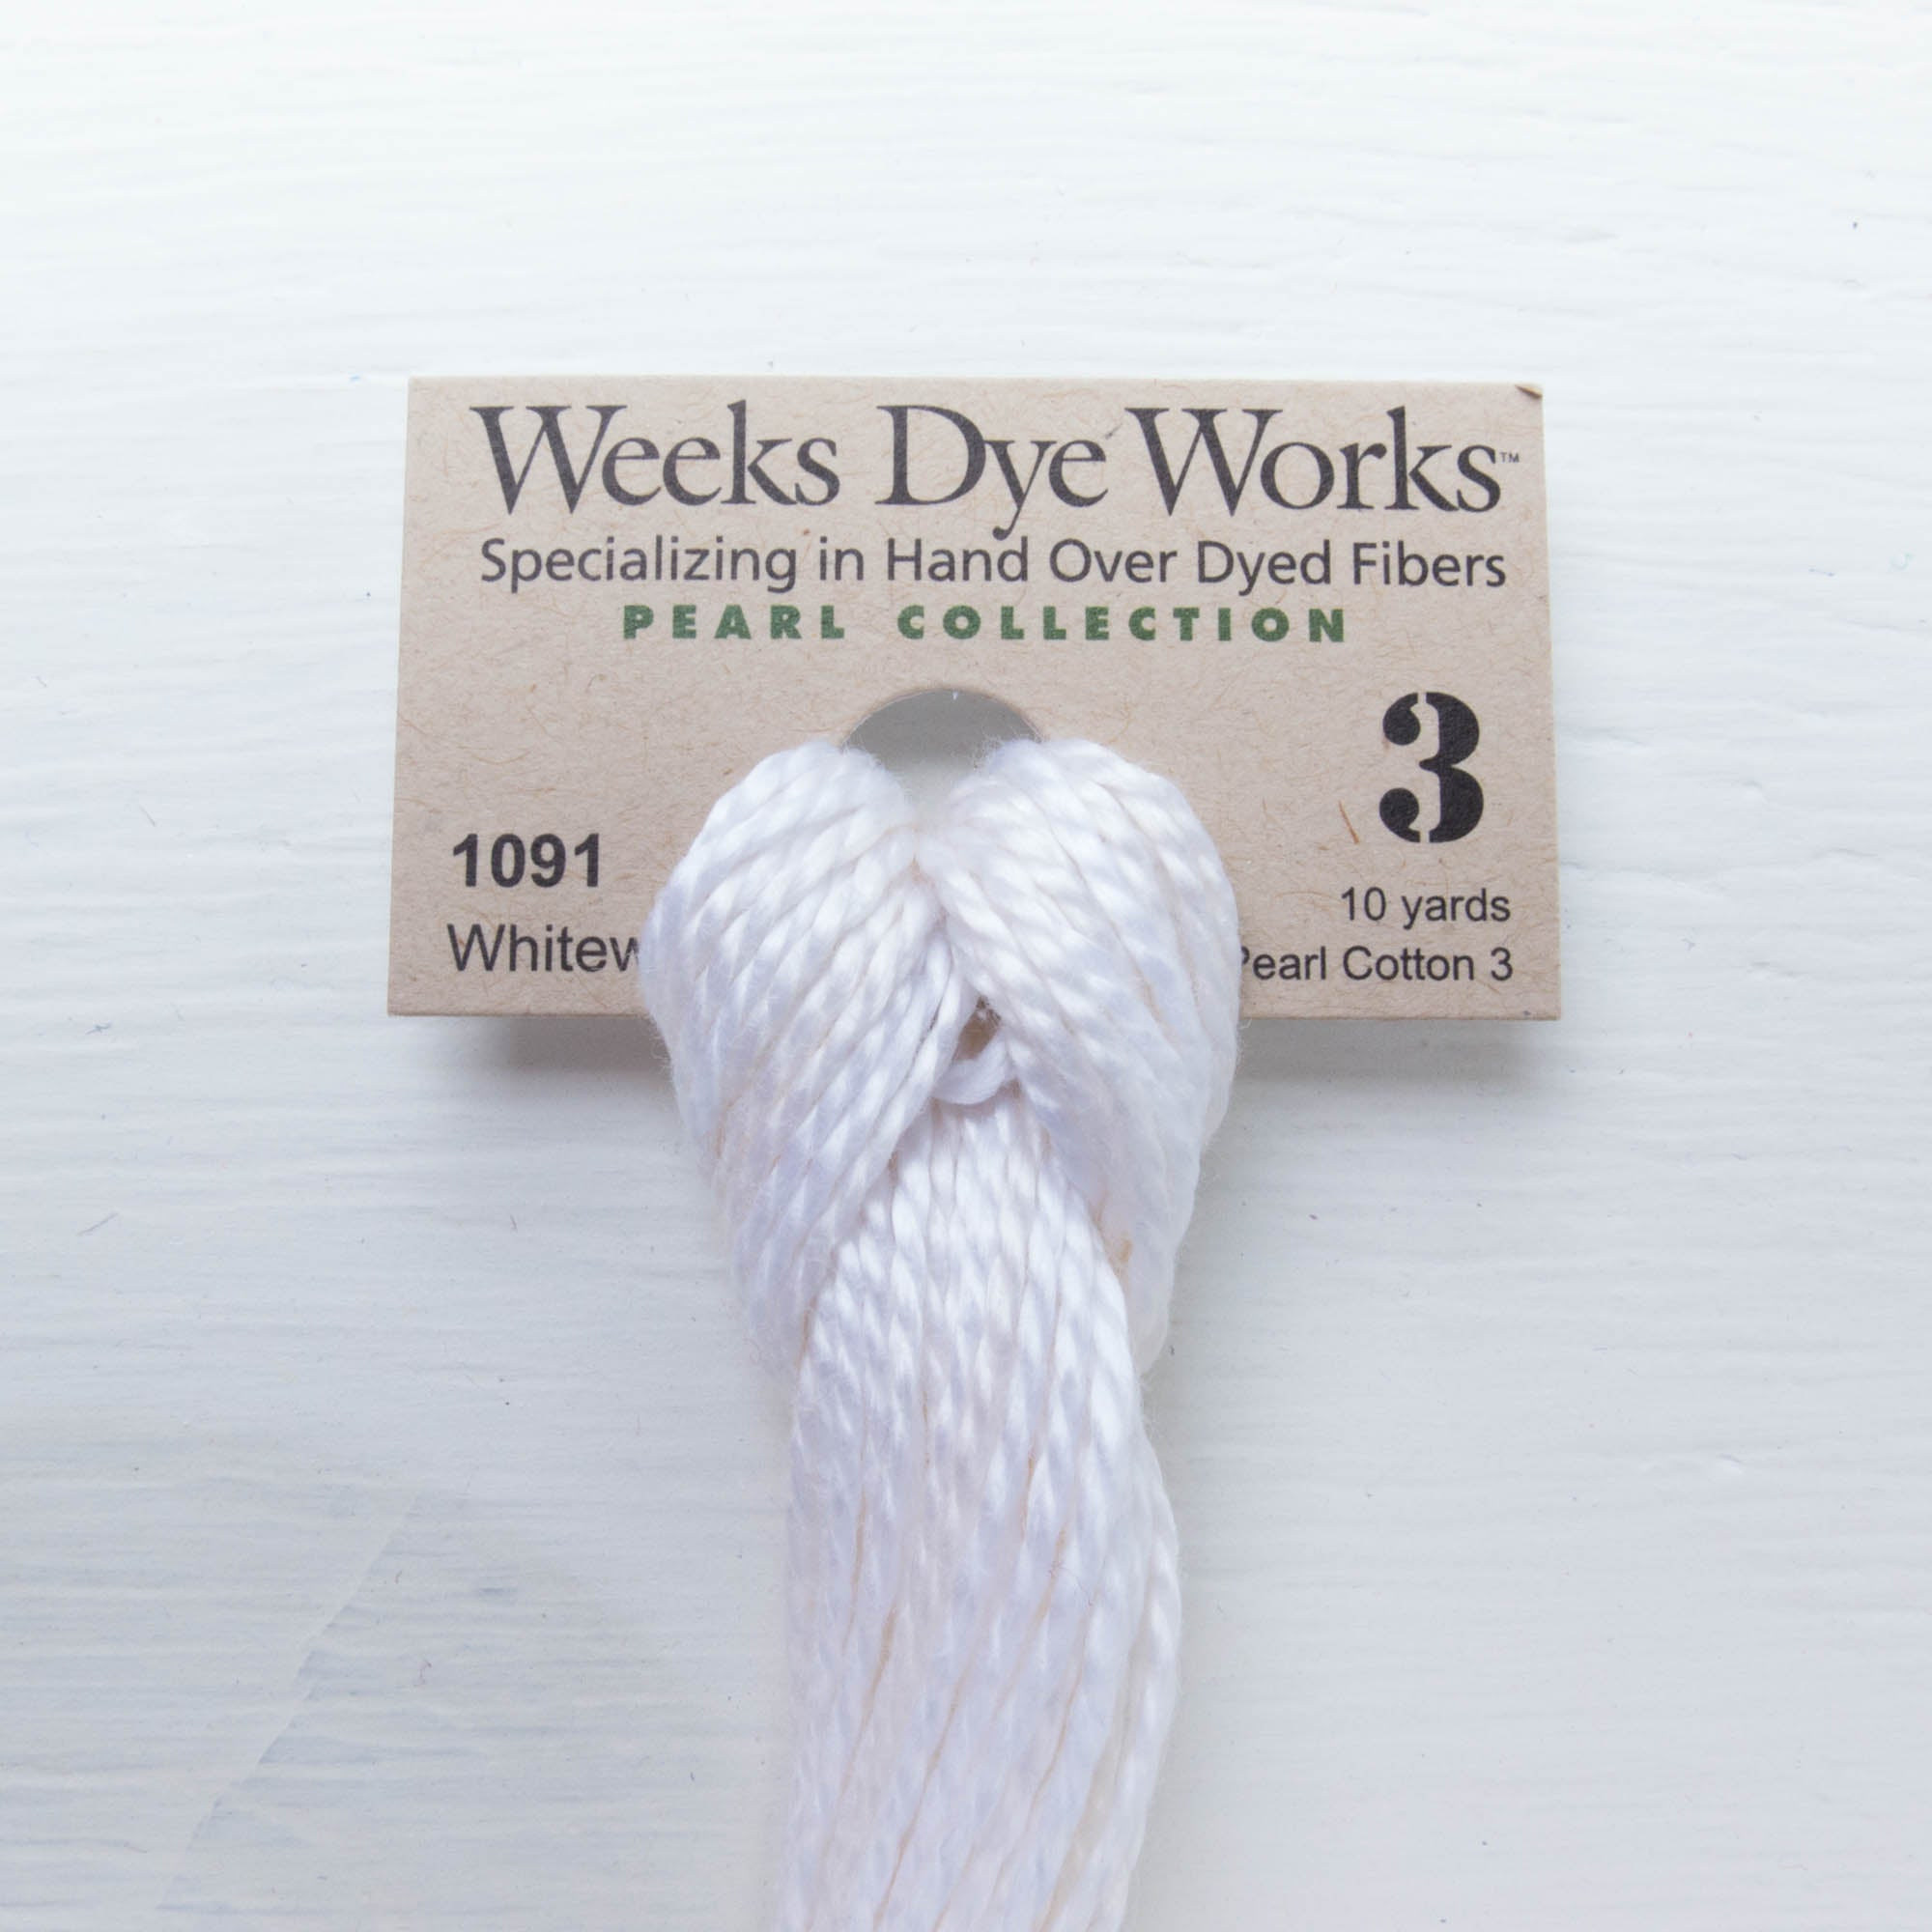 Size 3 Perle Cotton Thread - Weeks Dye Works Whitewash (1091) Perle Cotton - Snuggly Monkey